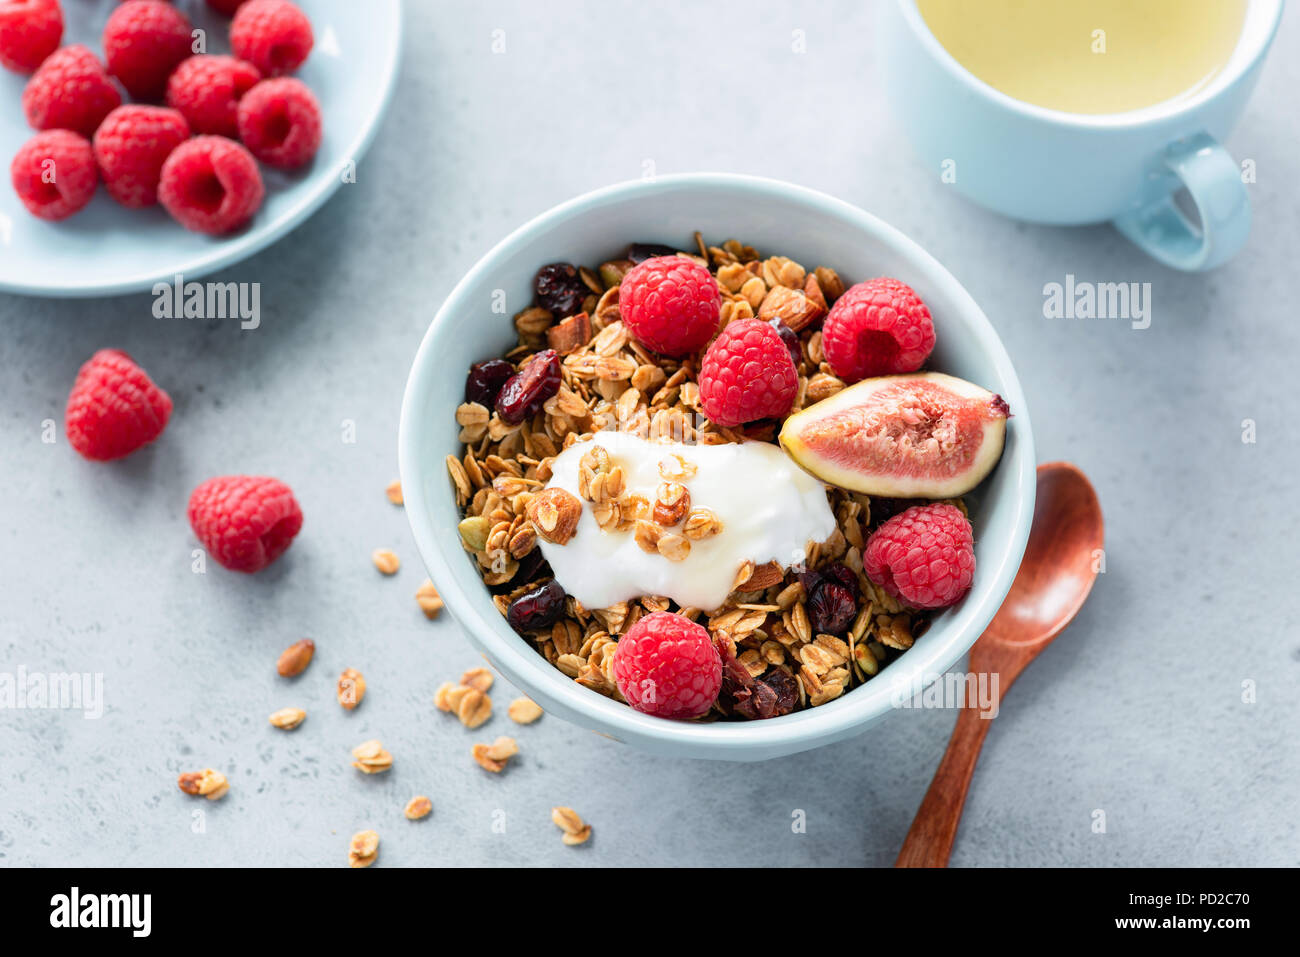 Healthy Breakfast Granola Bowl With Yogurt, Berries and Cup of Green Tea on Concrete Background. Top view. Concept of healthy eating, Healthy lifestyl - Stock Image